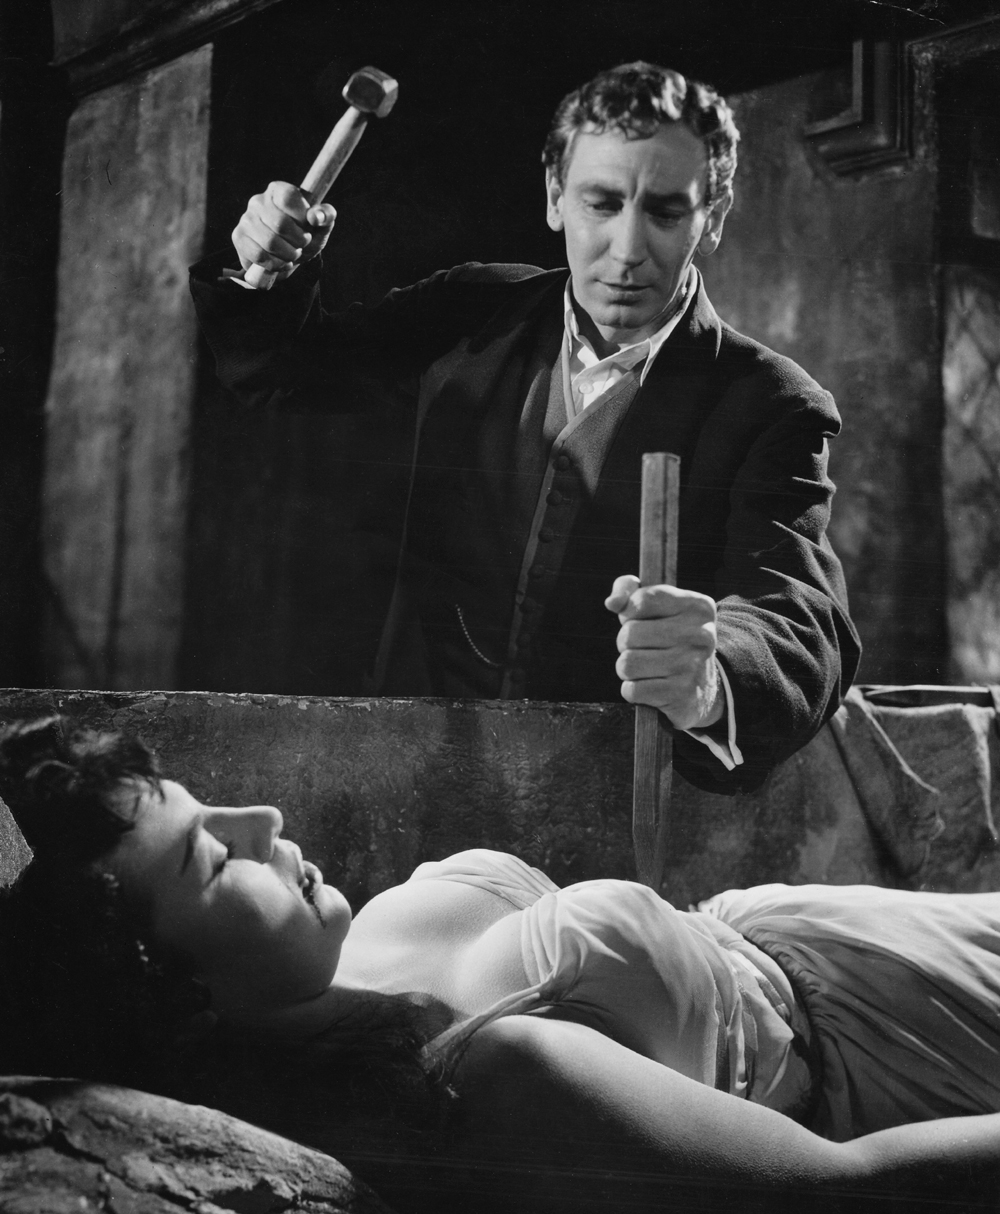 Opinion hammer horror films of movies consider